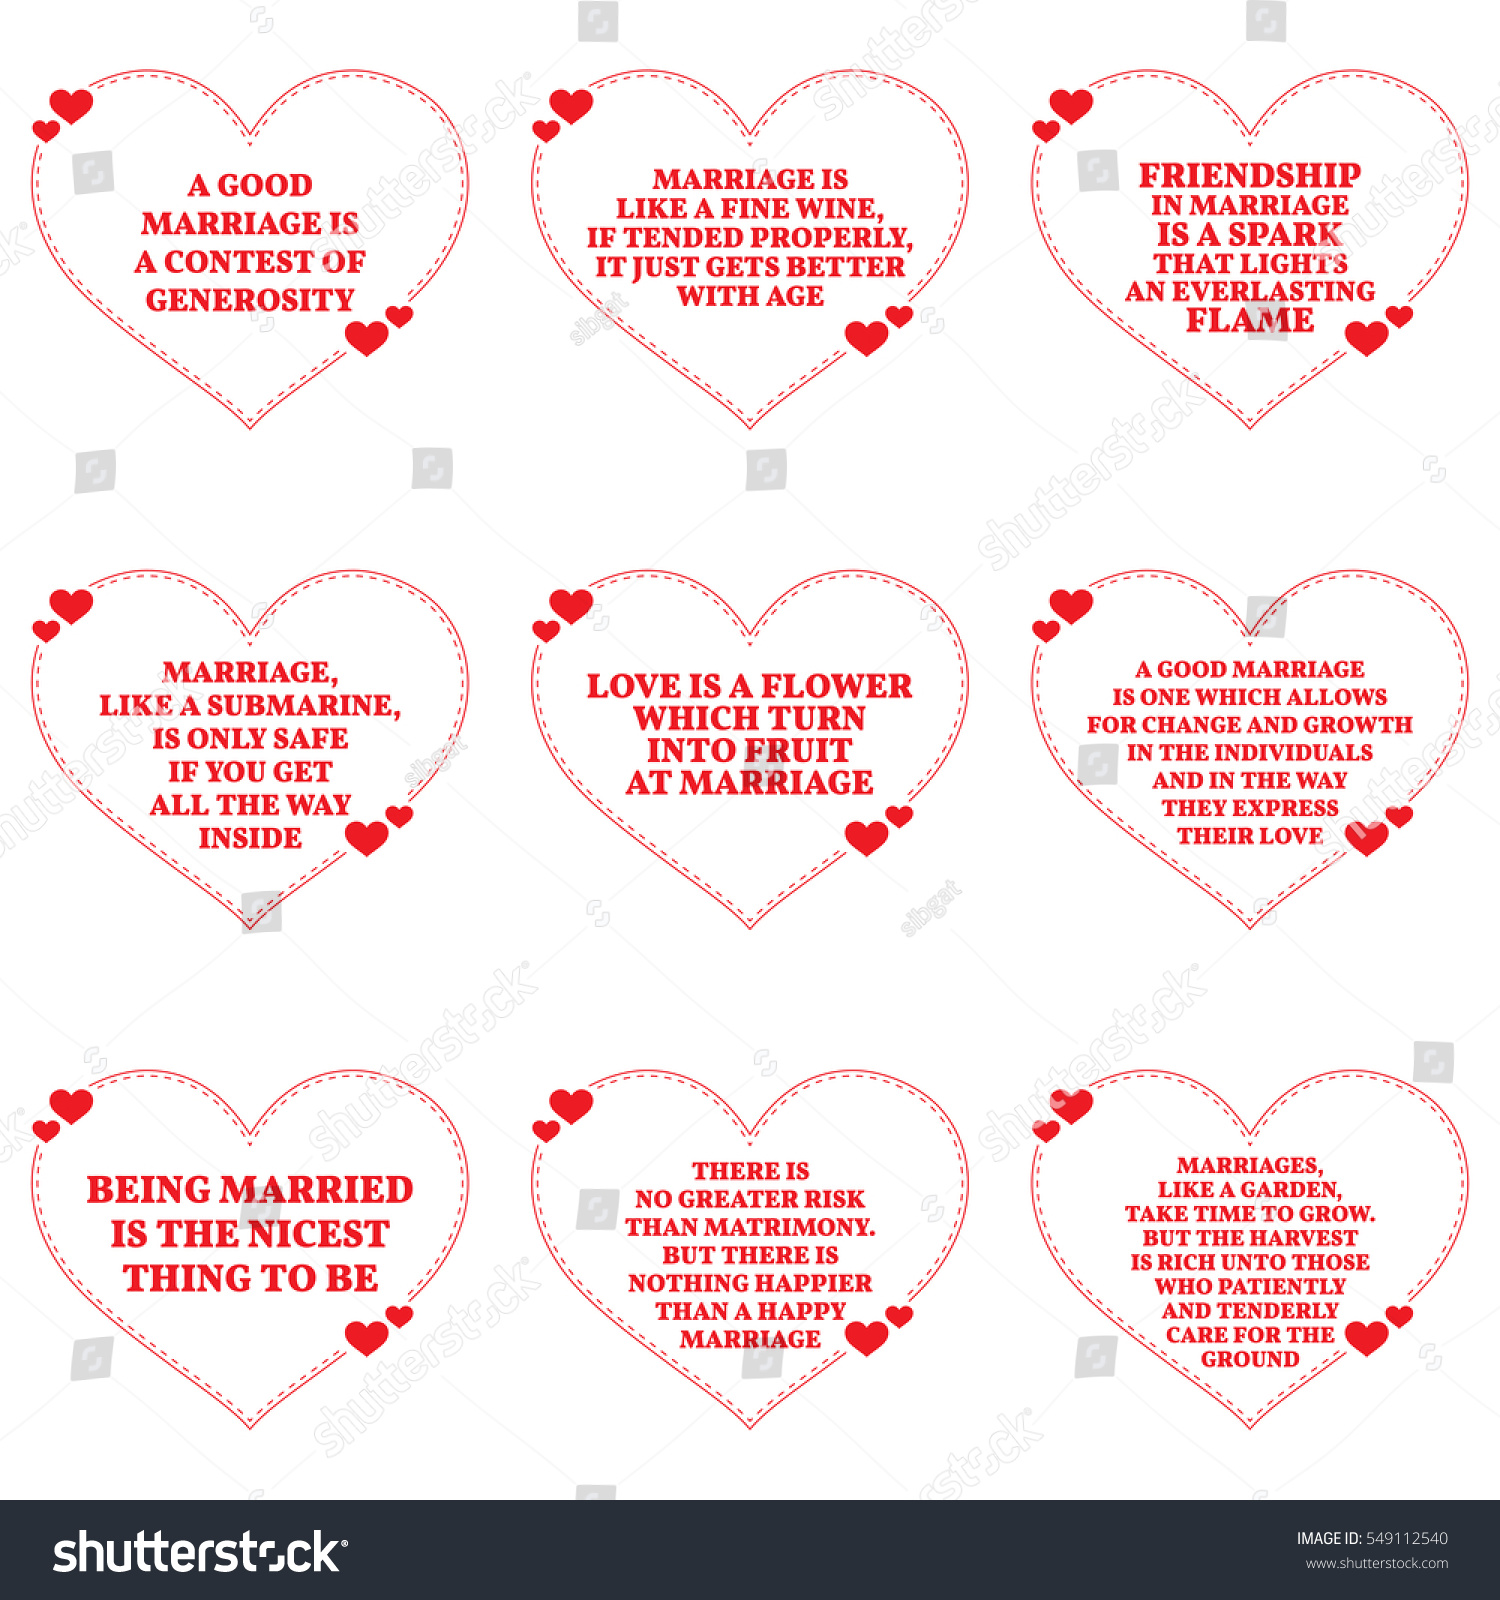 Love Marriage Quotes Set Quotes About Love Marriage Over Stock Vector 549112540